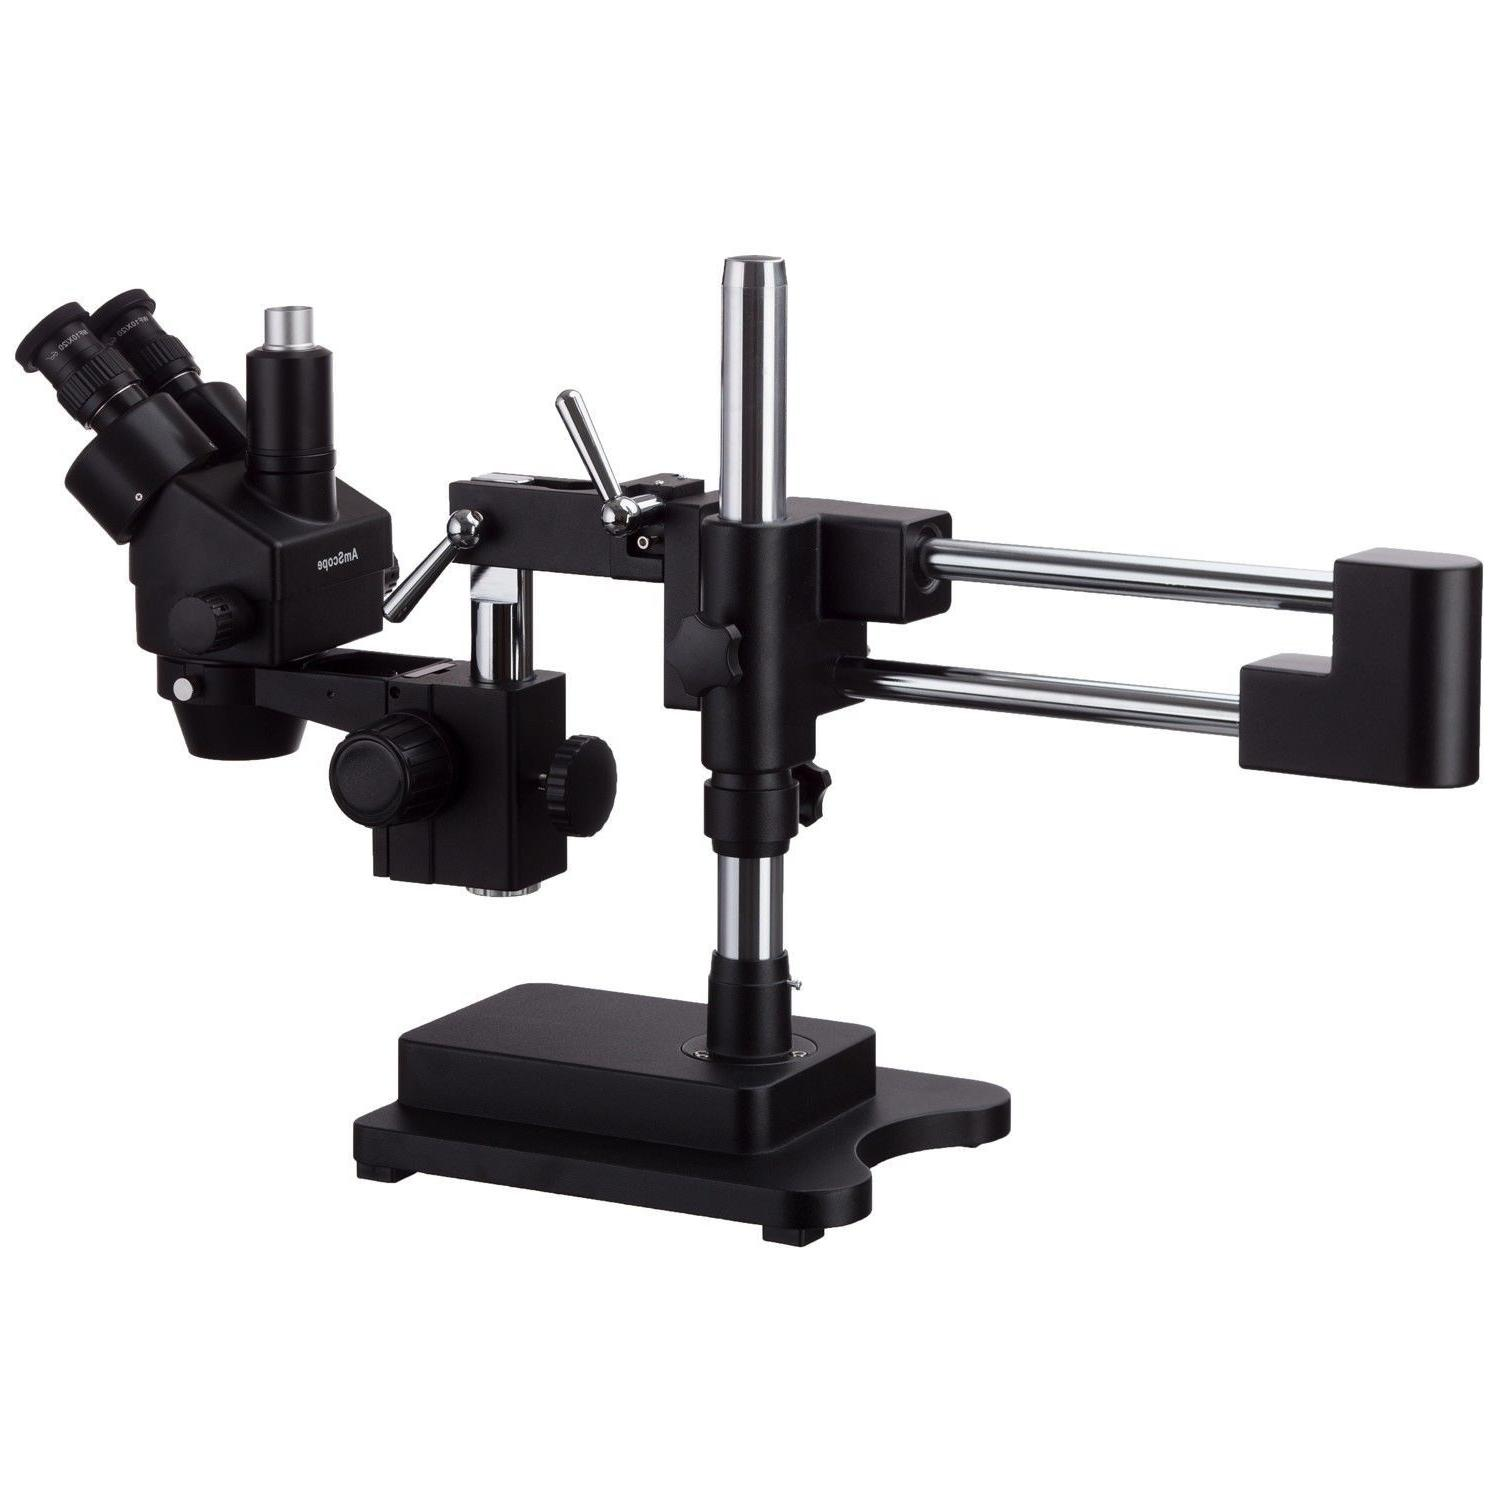 AmScope 3.5X-90X Stereo Zoom Microscope Double Arm Boom